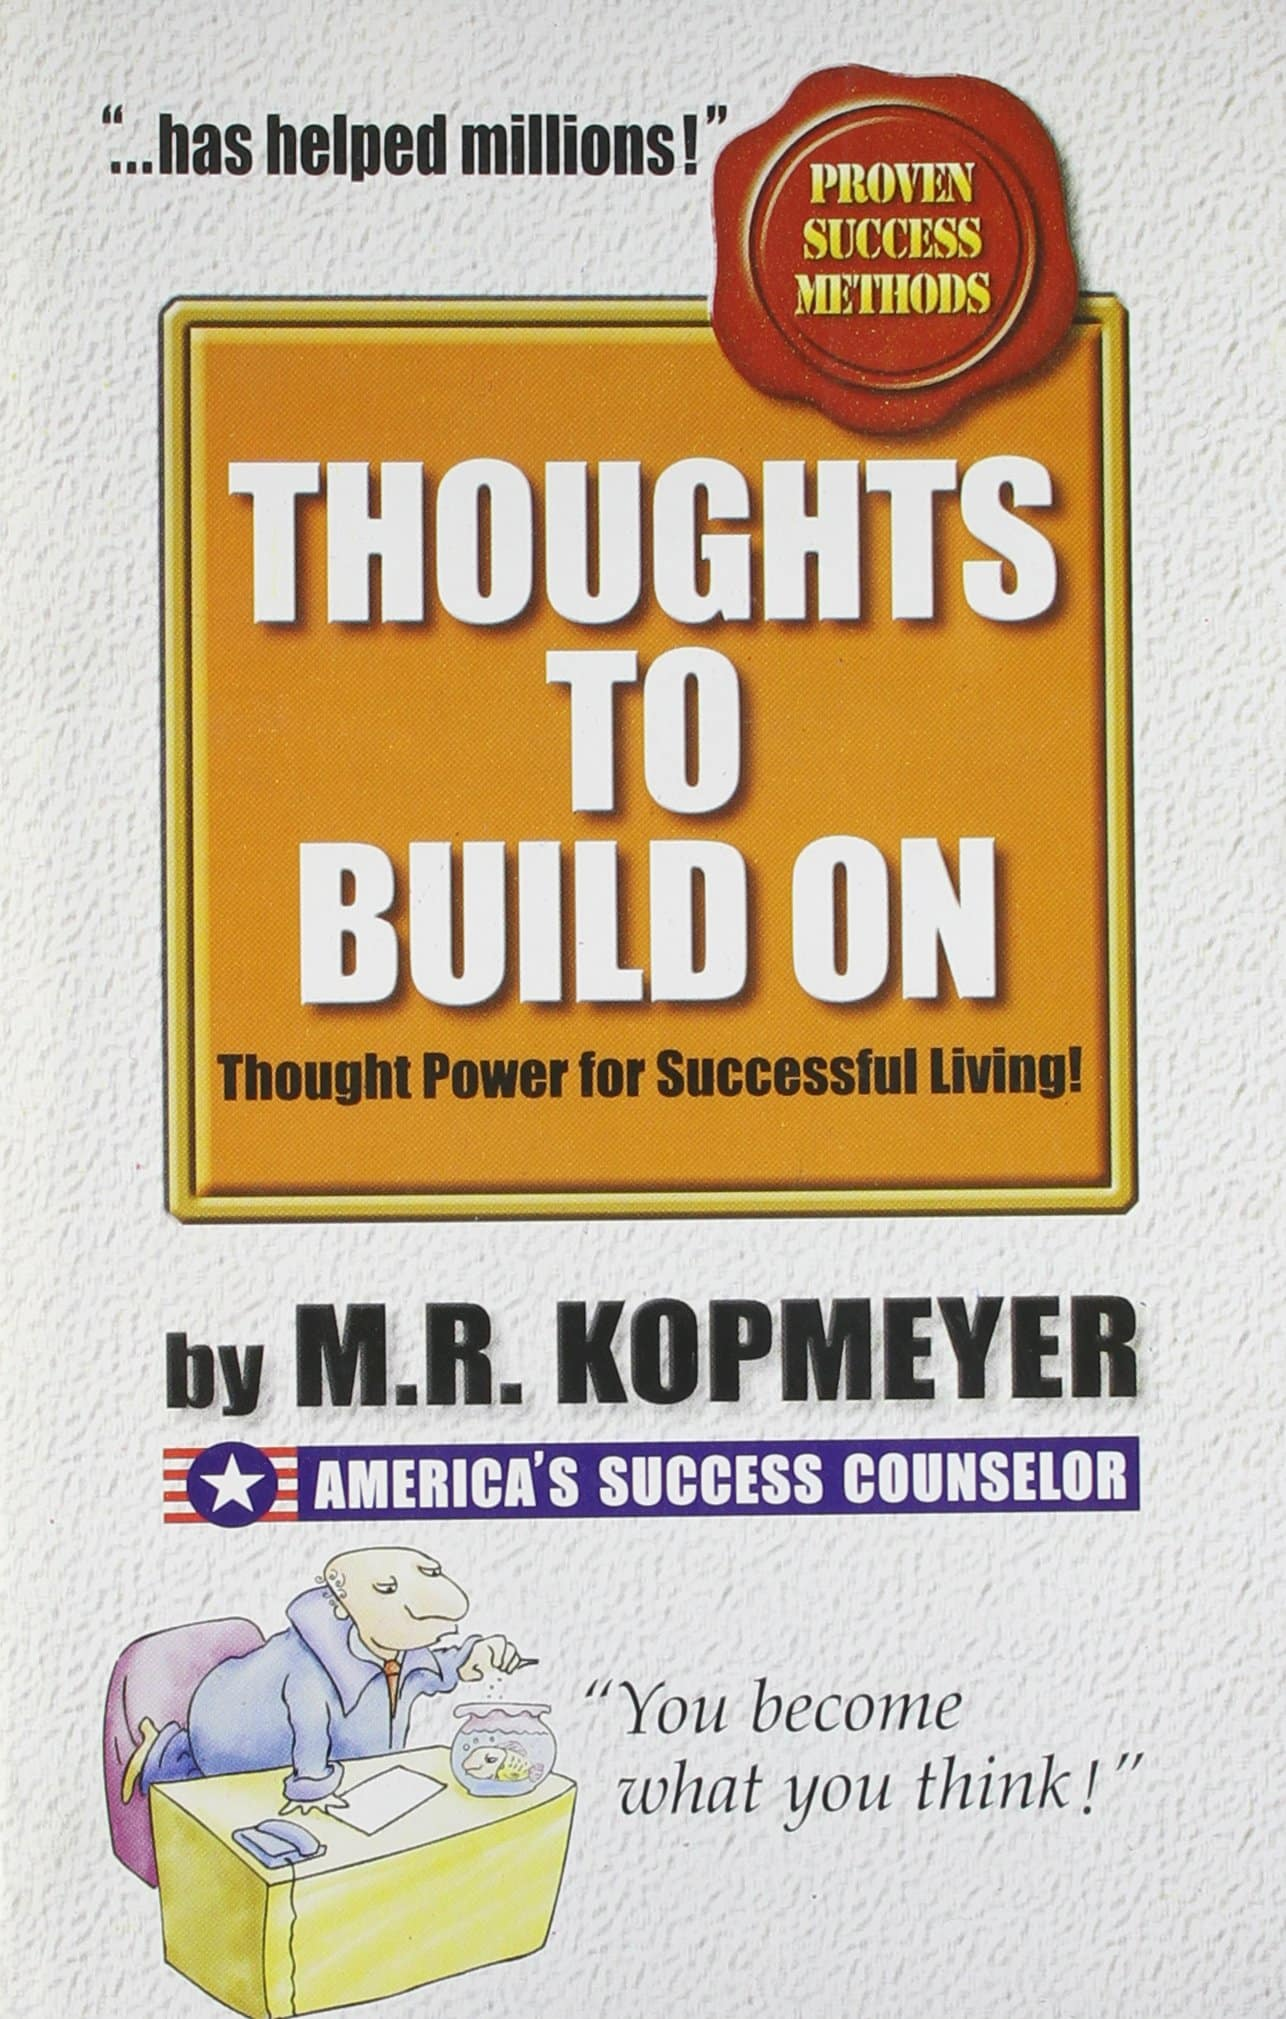 Classic Kopmeyer Success Book